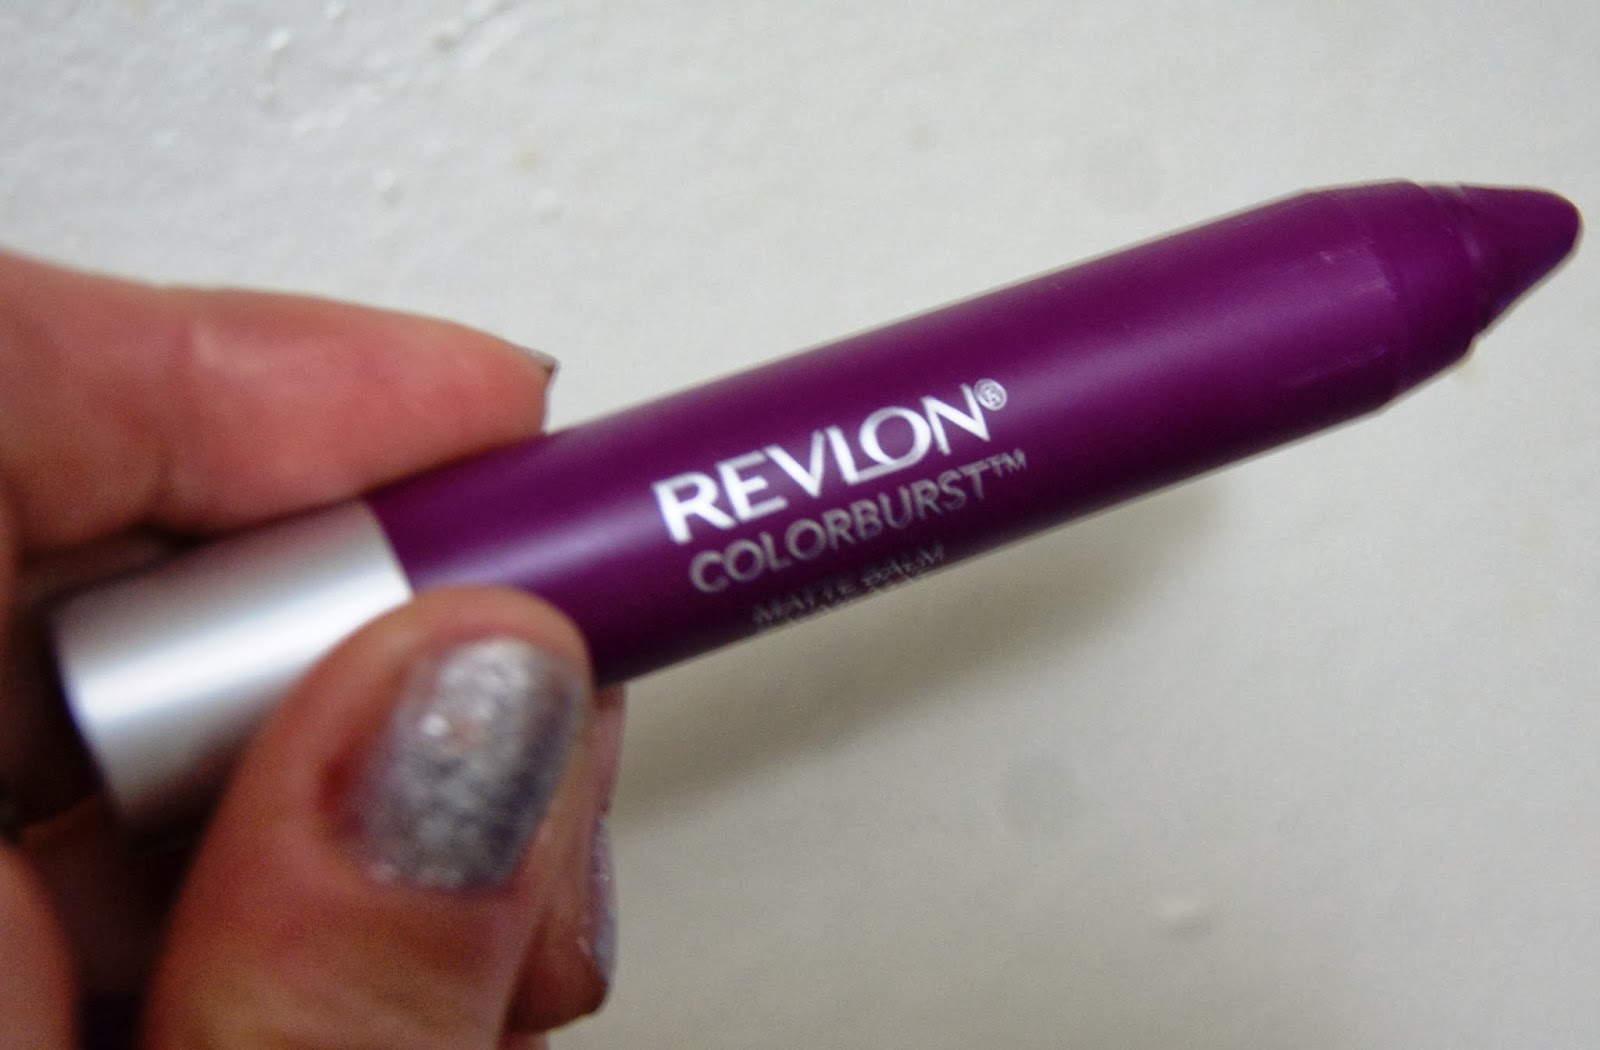 Revlon Colorburst Matte Balm, Colorburst Lacquer Balm, Nail Enamel, Powder Blush, Highlighting Palette Beauty Review Melani.Ps Makeup Nail polish Toronto The Purple Scarf Shameless